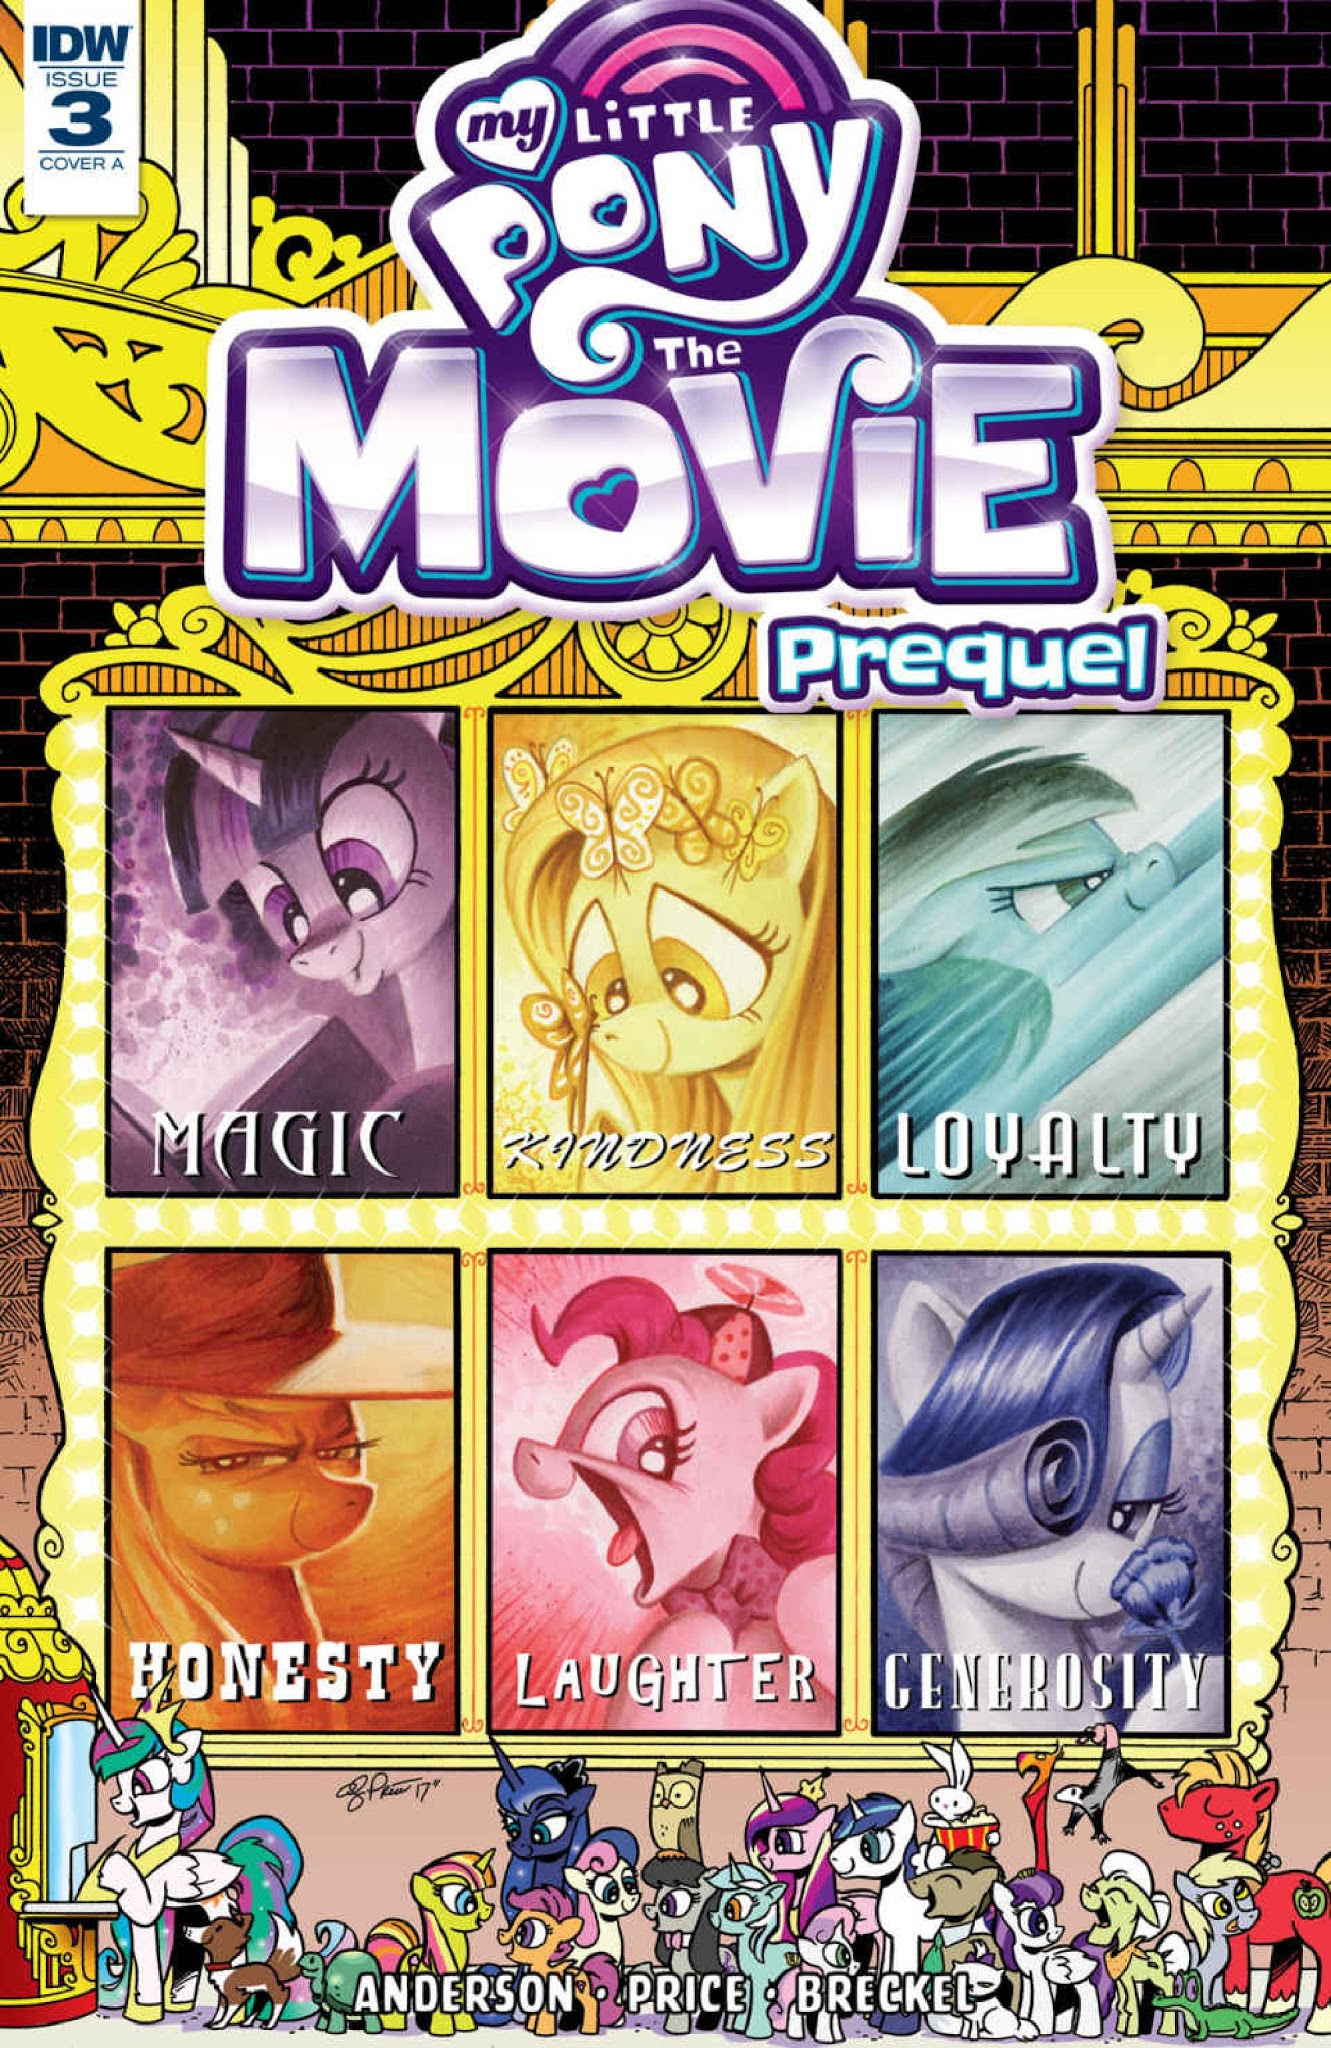 My Little Pony: The Movie Prequel 3 Page 1